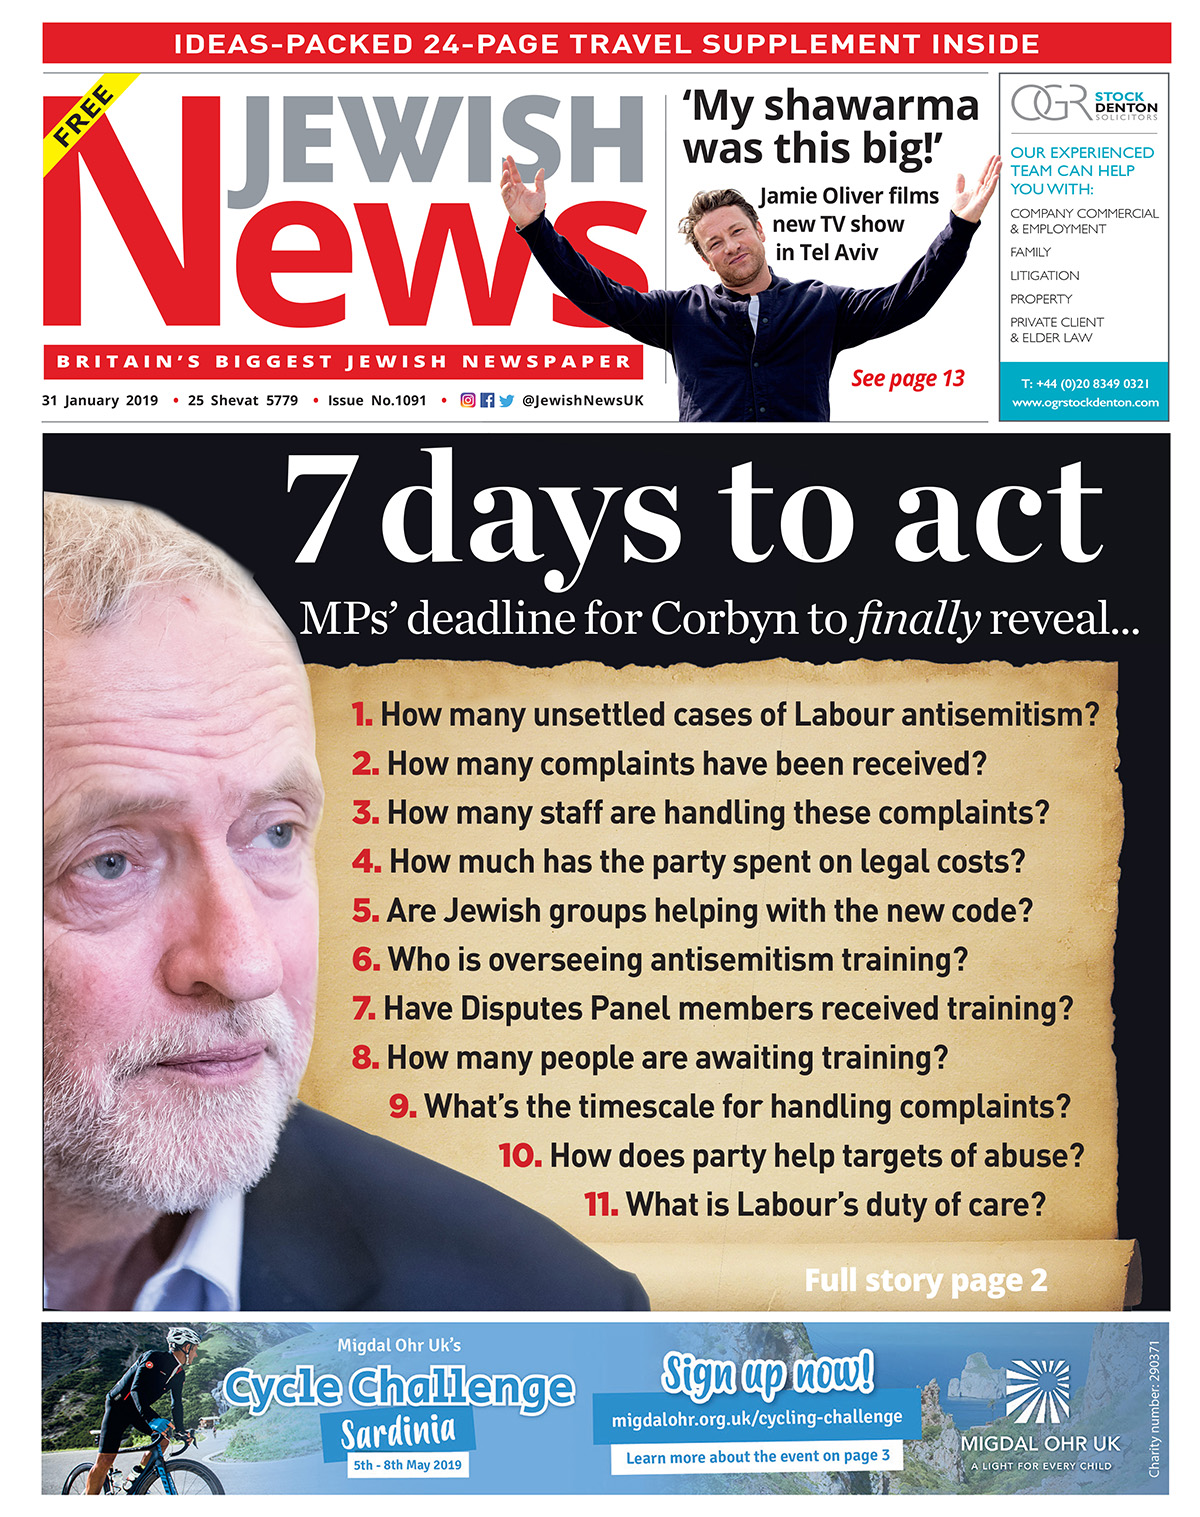 Last week's Jewish News front page, where MPs gave Labour 7 days to act on antisemitism